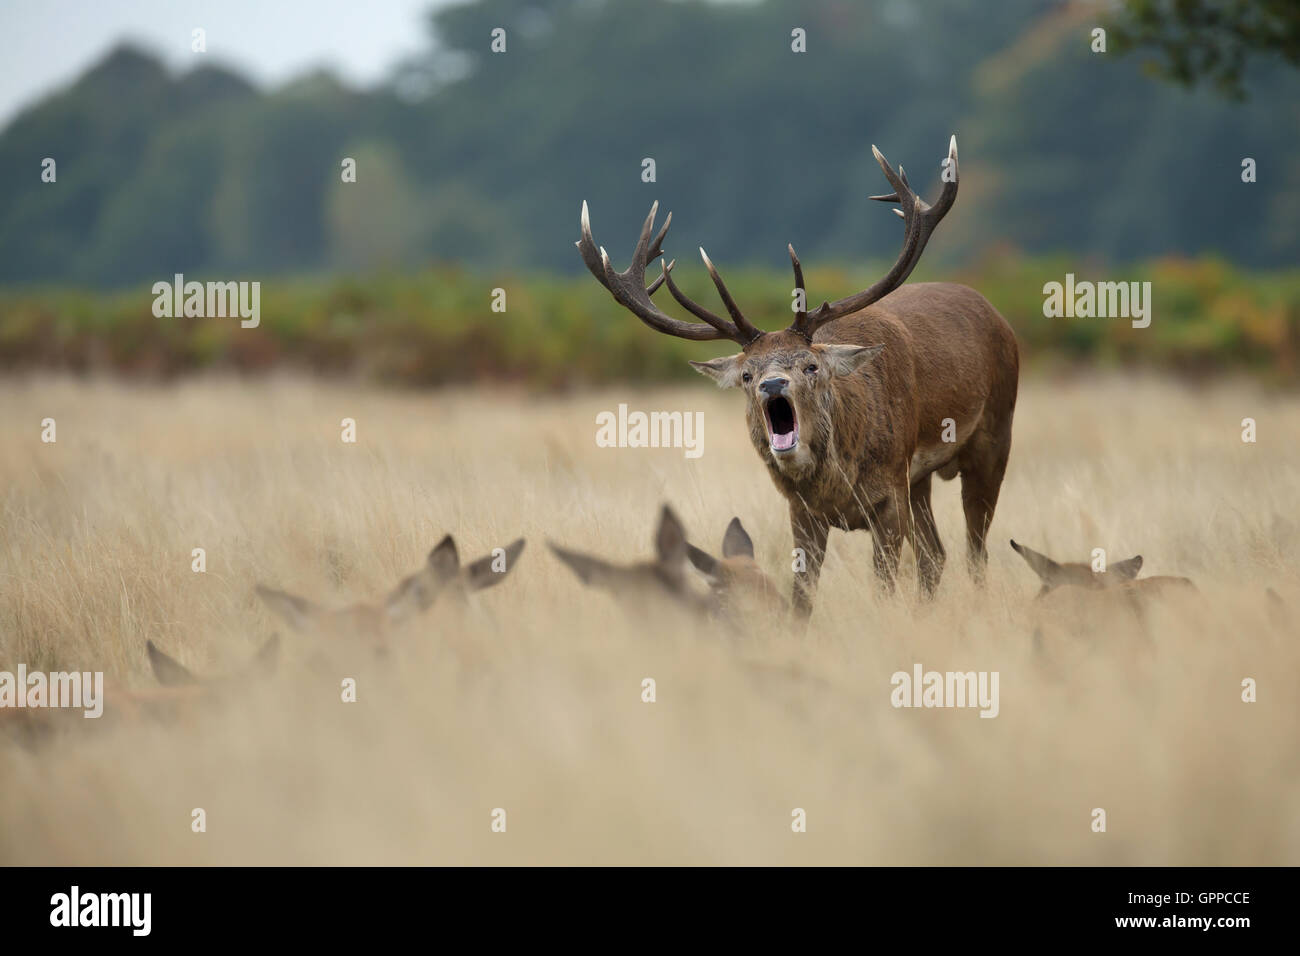 Red deer stag roaring near the hinds during the rut - Stock Image